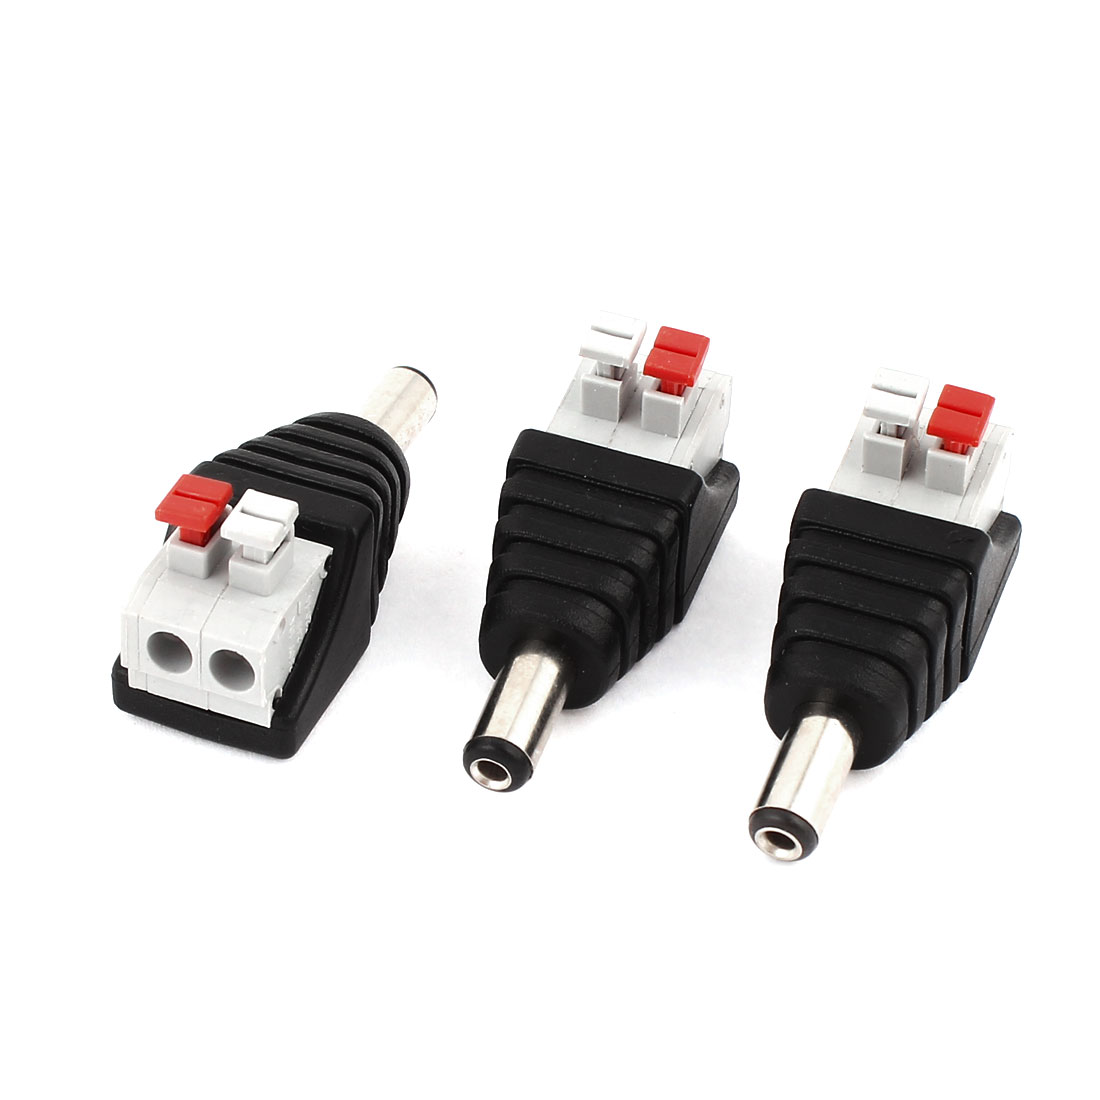 3 Pcs 5.5x2.1mm DC Power Male Spring Terminal Adapter Connector for CCTV Camera